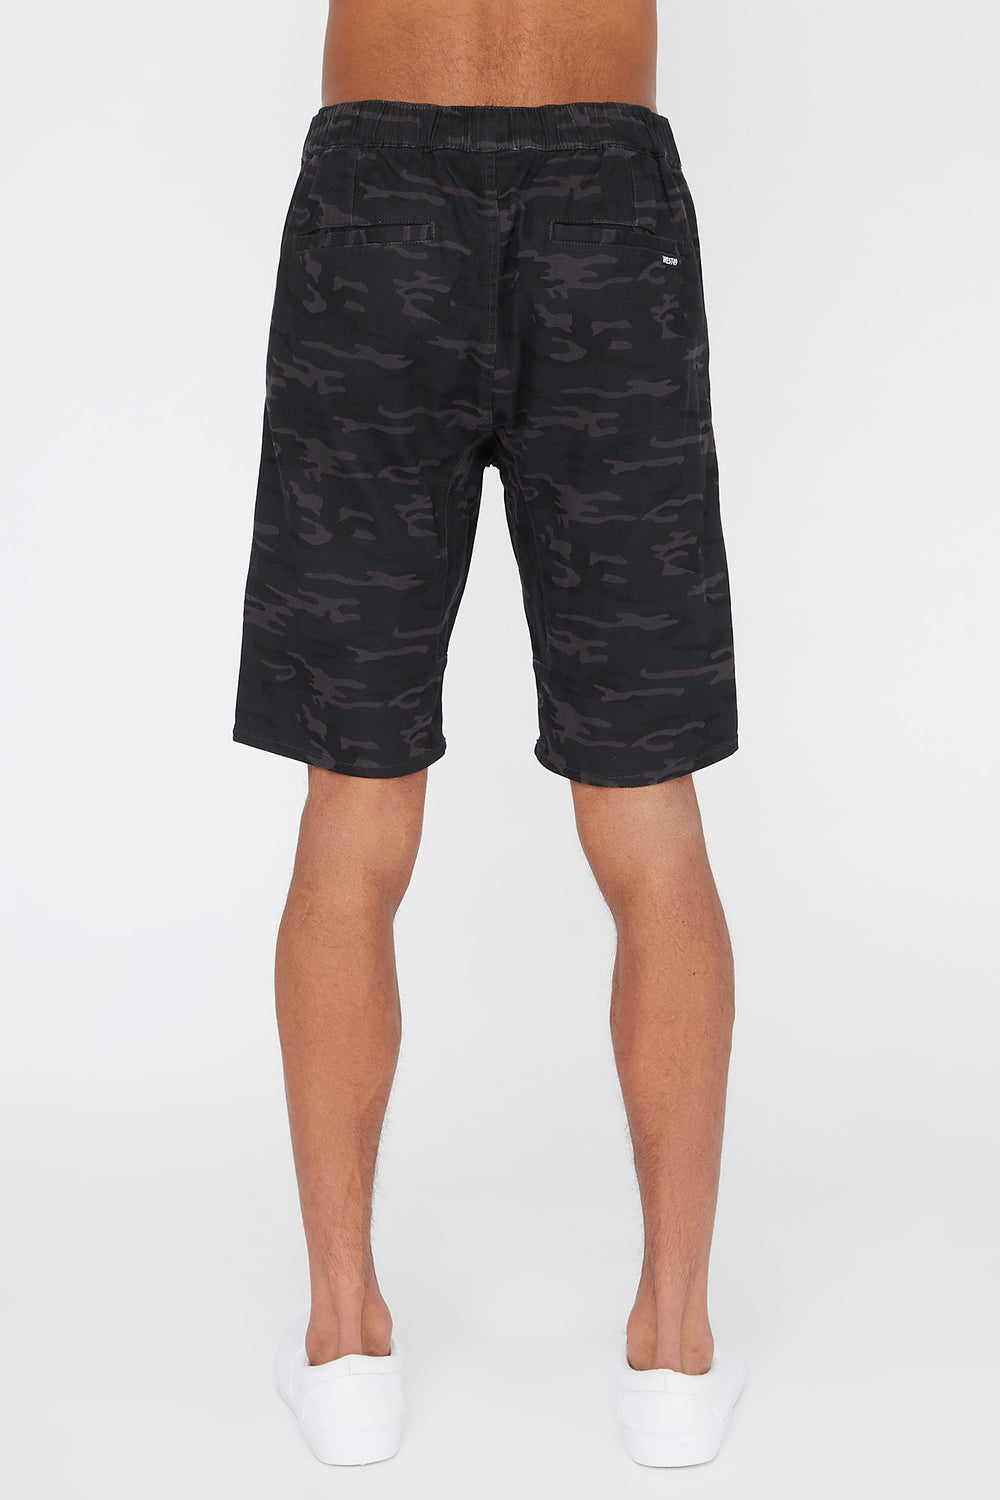 West49 Mens Camo Jogger Short Black with White